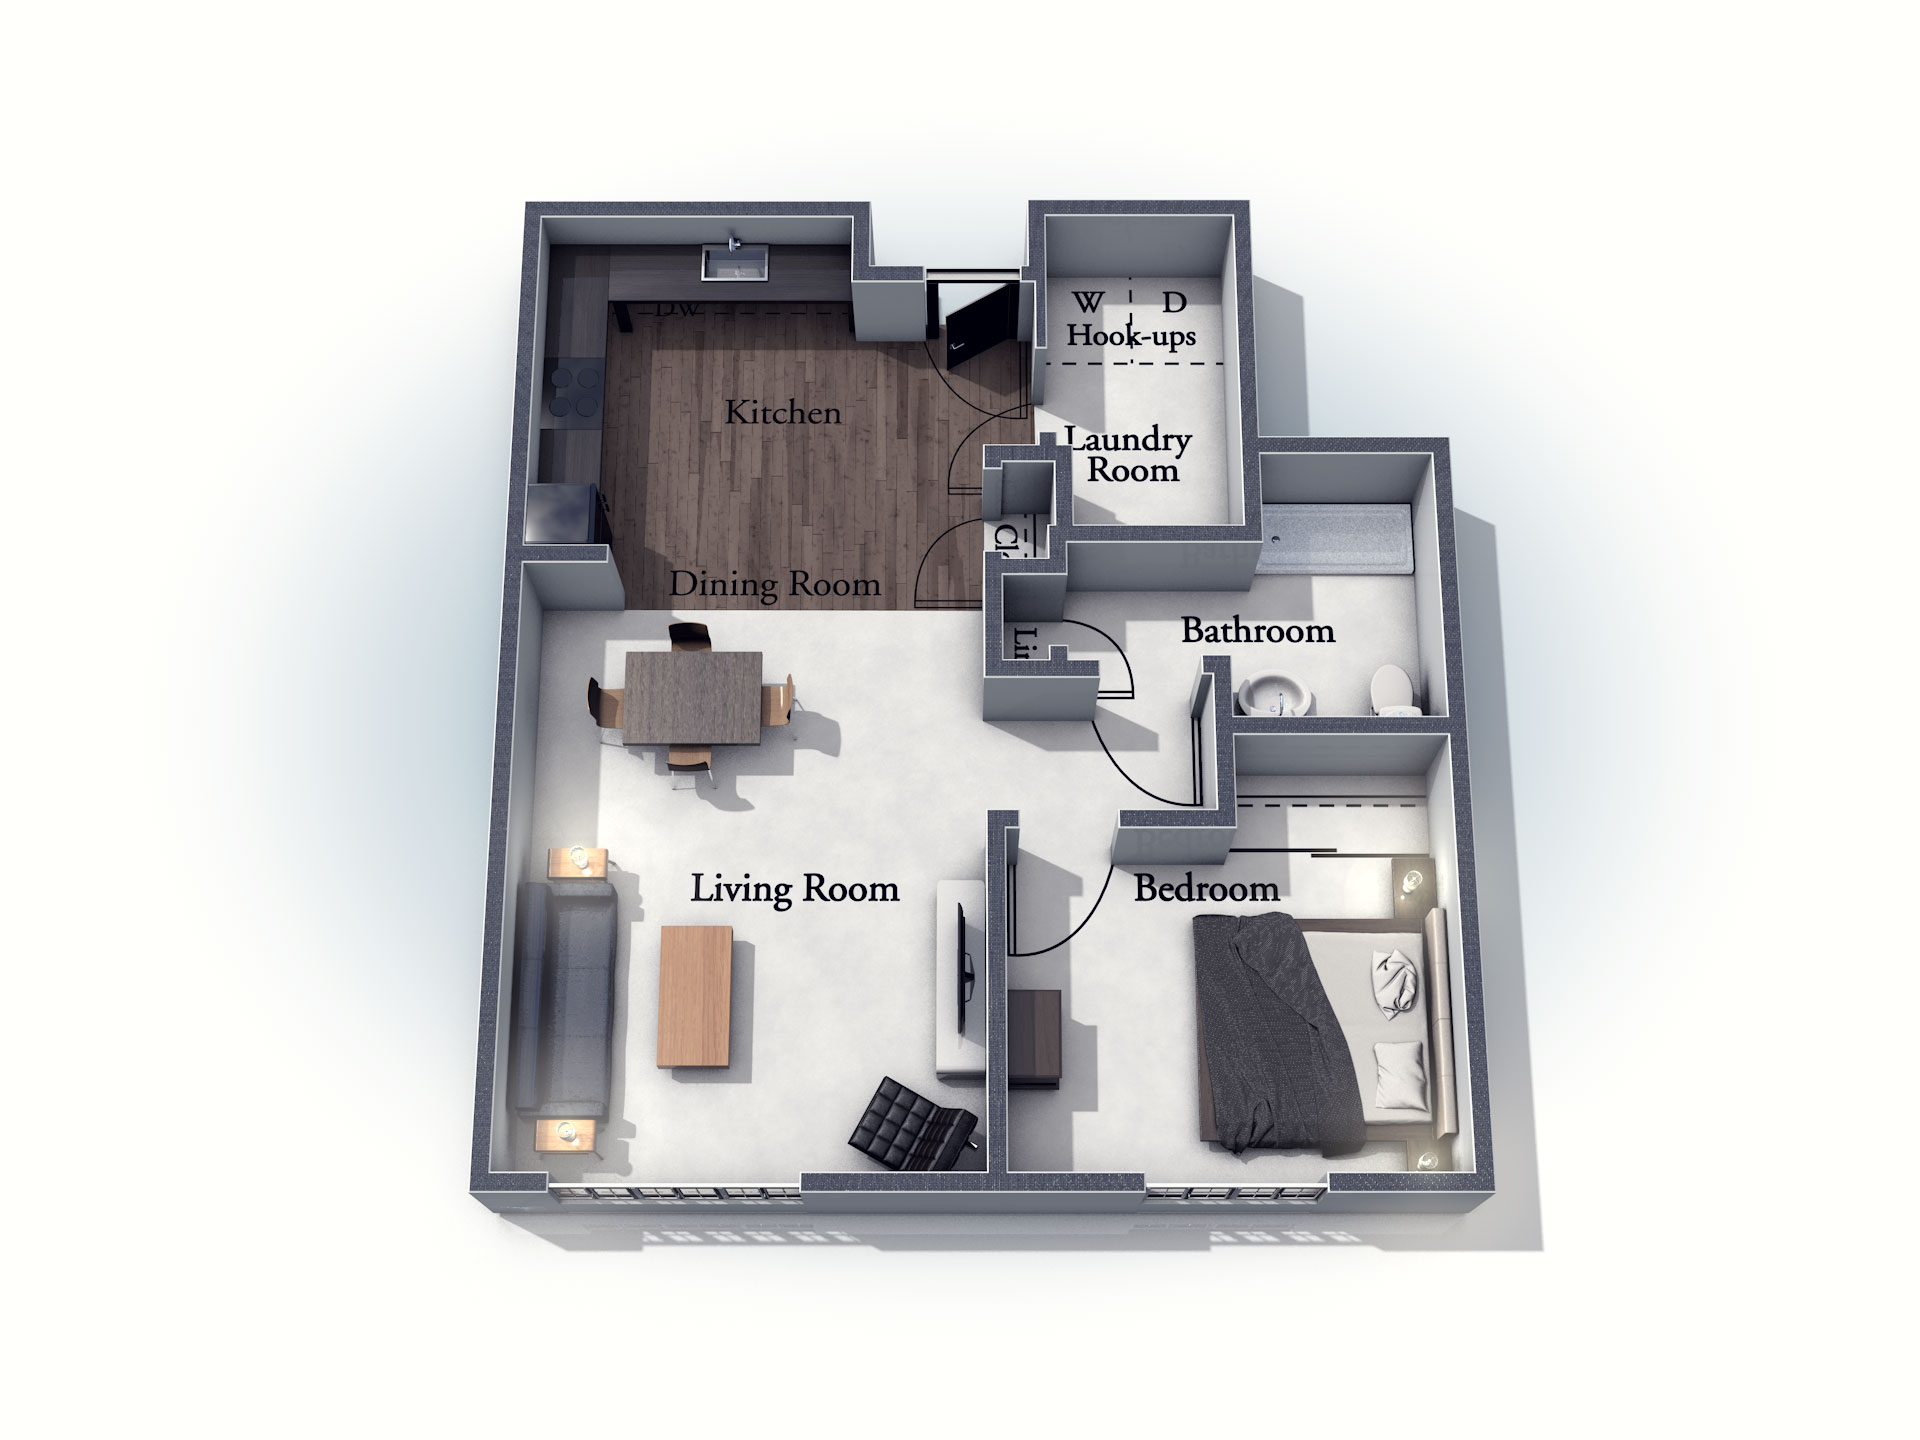 This 3D rendering of the Wiltshire living space shows an example of the floor plan layout. Please contact the Summit Pointe Senior Living Community for more information.